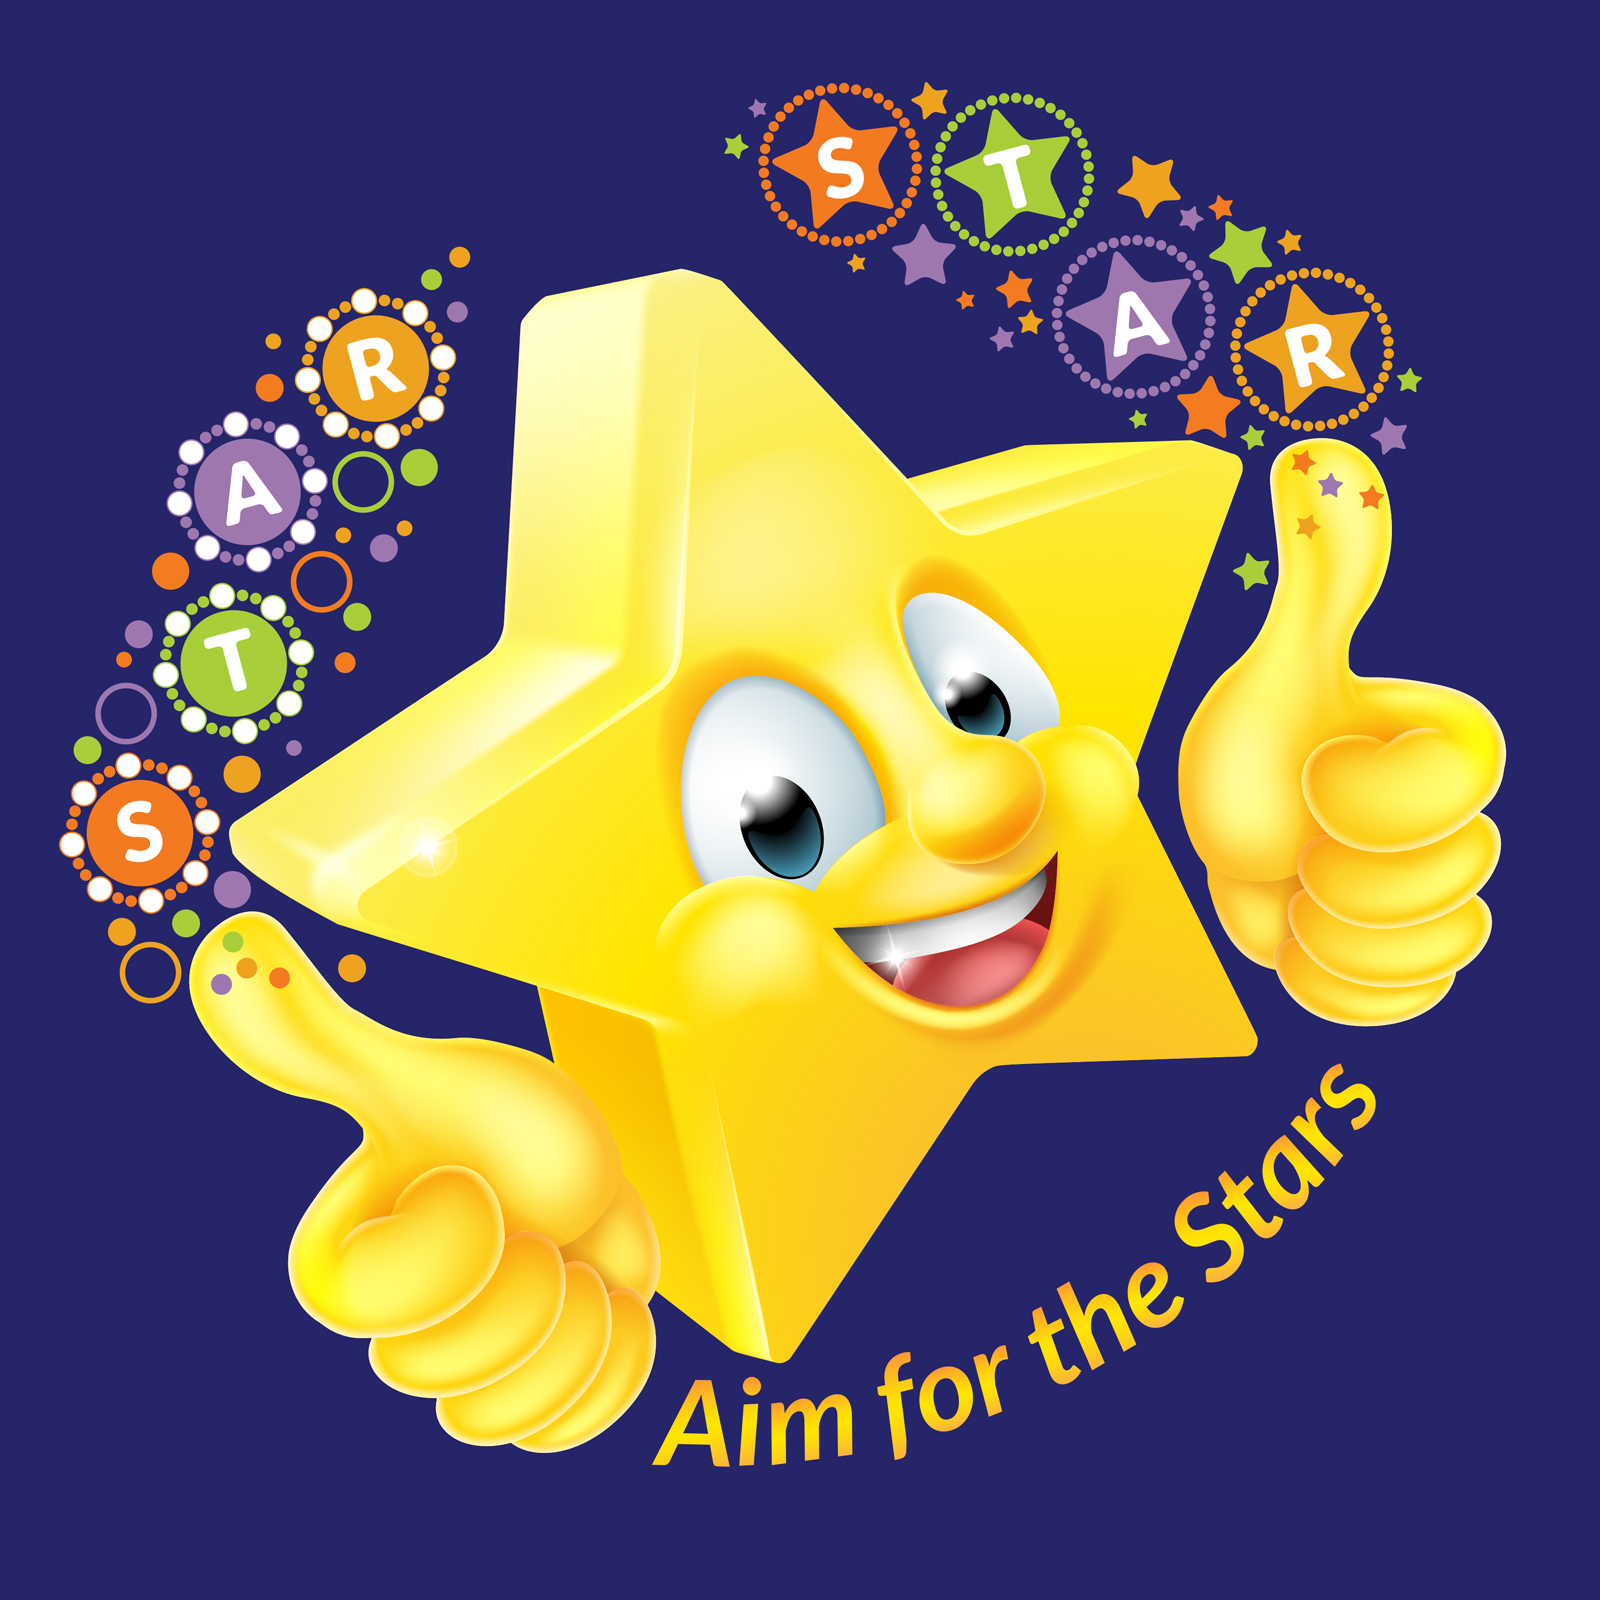 PBL Aim for the Stars